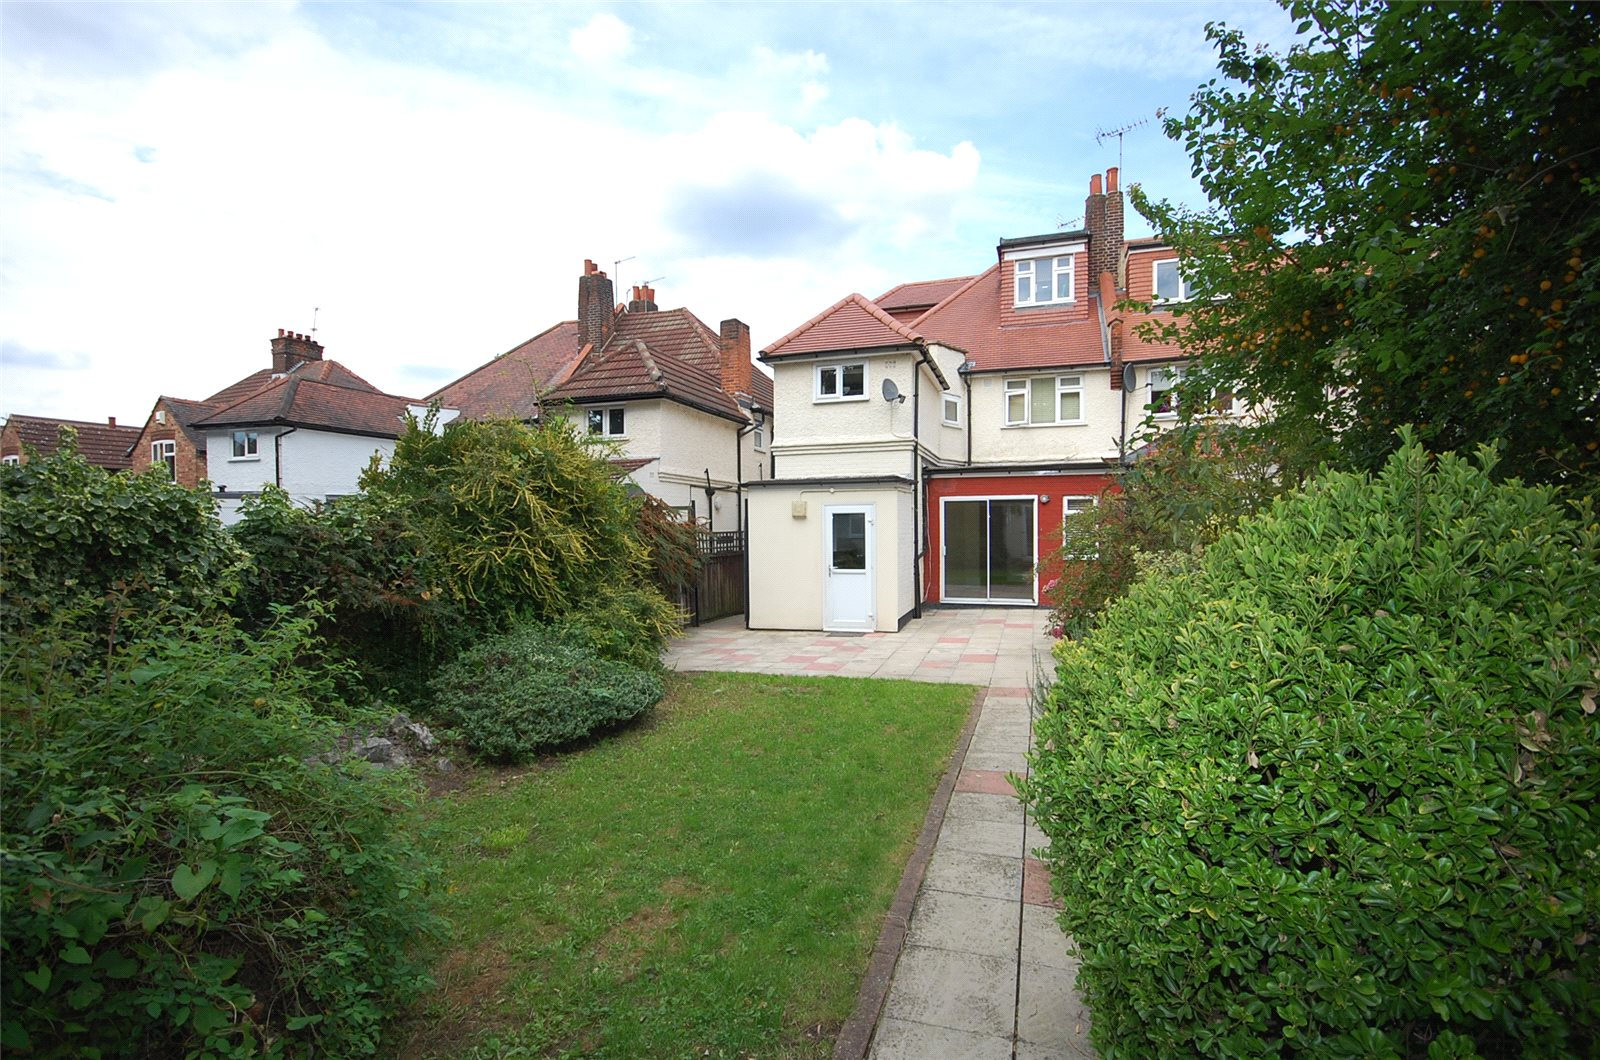 2 Bedrooms Flat for sale in Lichfield Grove Finchley London N3